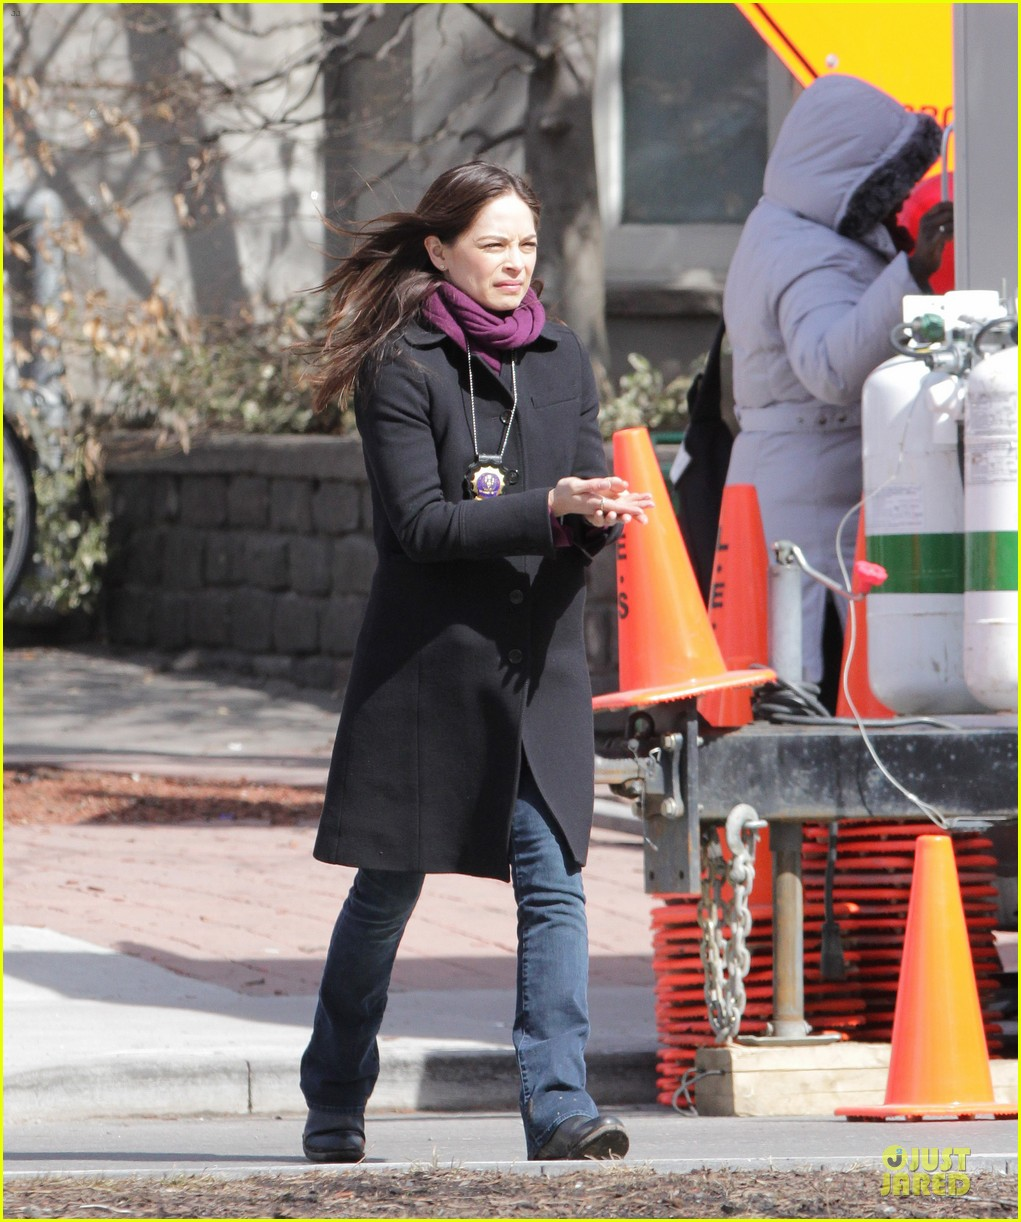 kristin kreuk gun carrying beauty and the beast scene 082838018